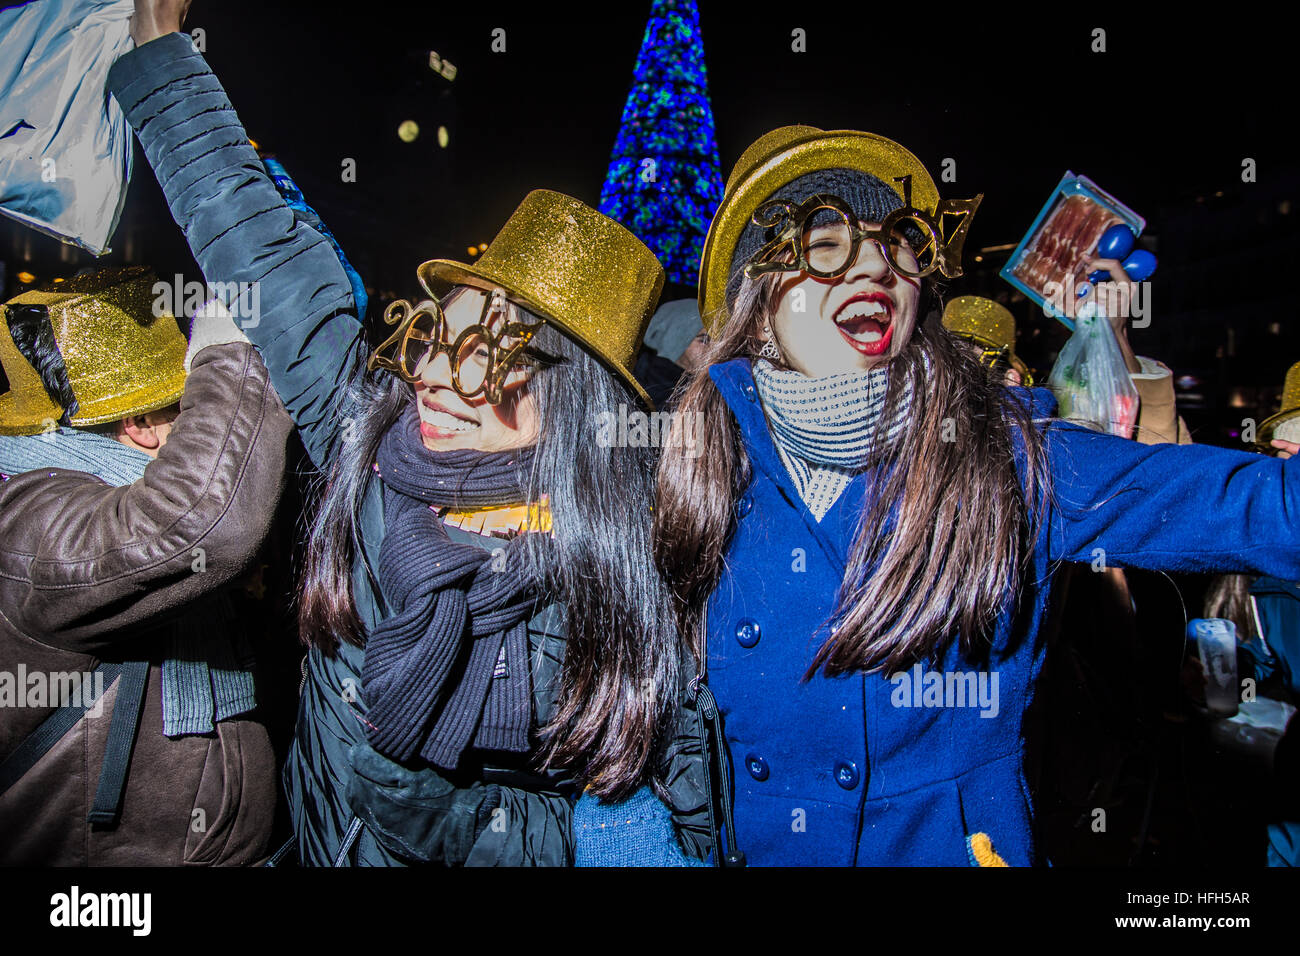 Madrid, Spain. 1st Jan, 2017. celebrations of happy new year 2017 in square sol. people in the center of Madrid - Stock Image